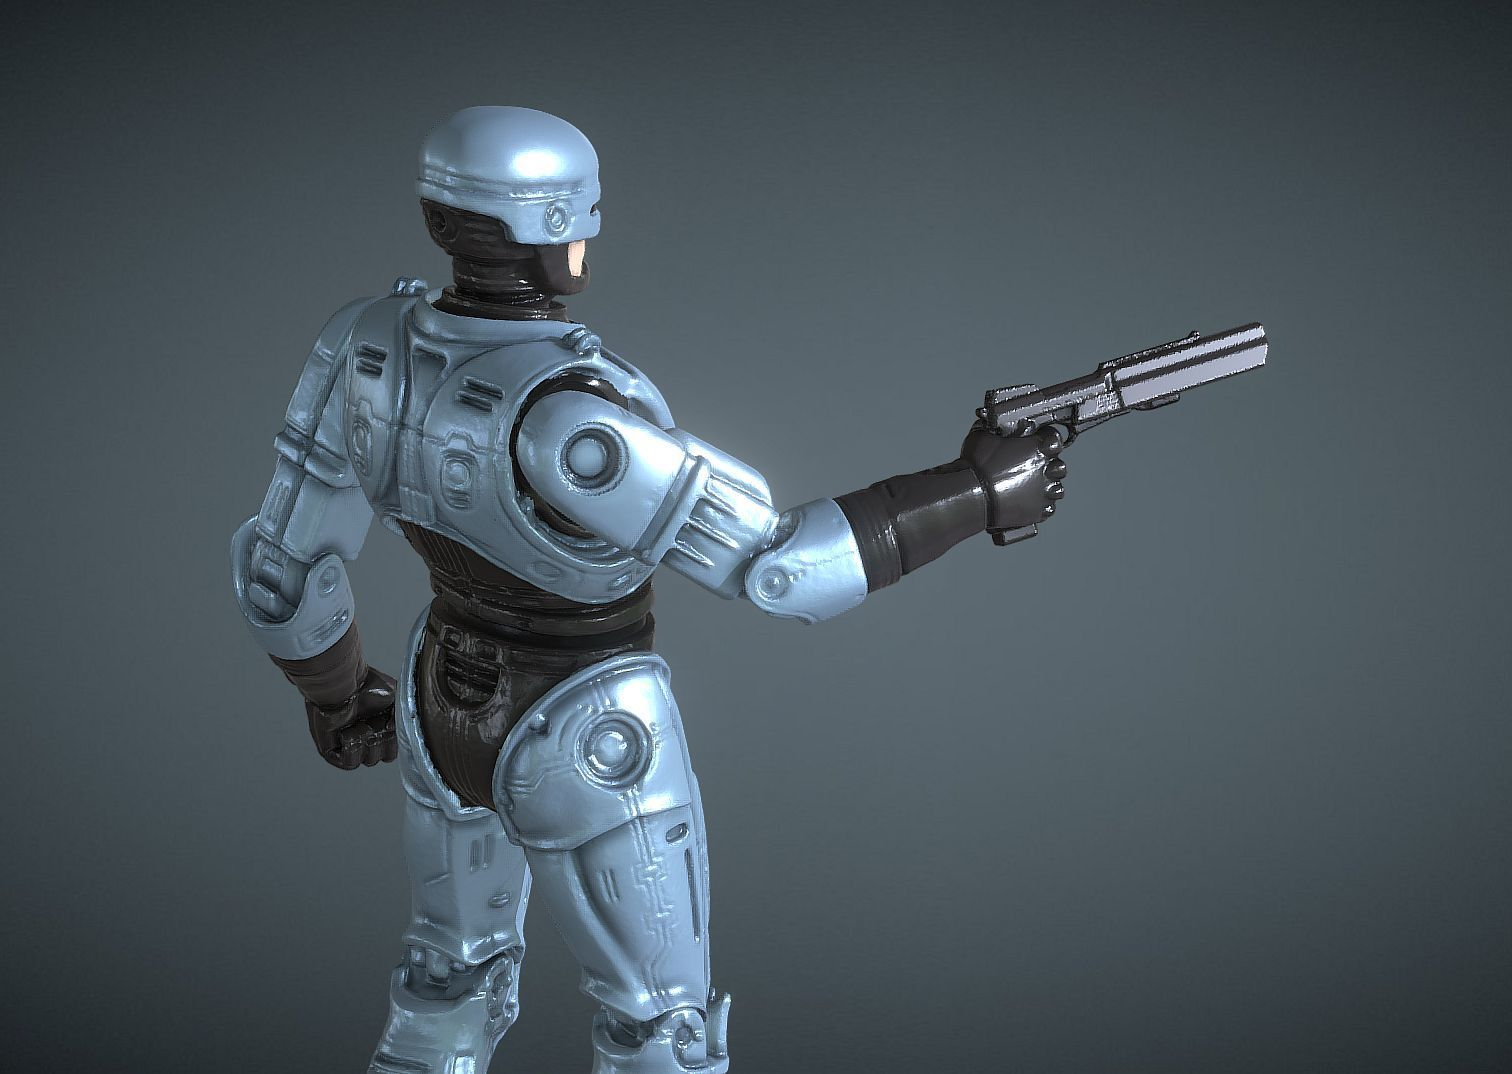 CAPTURE_004B.jpg Download STL file ROBOCOP INSPIRITED FIGURE • Design to 3D print, Masterclip